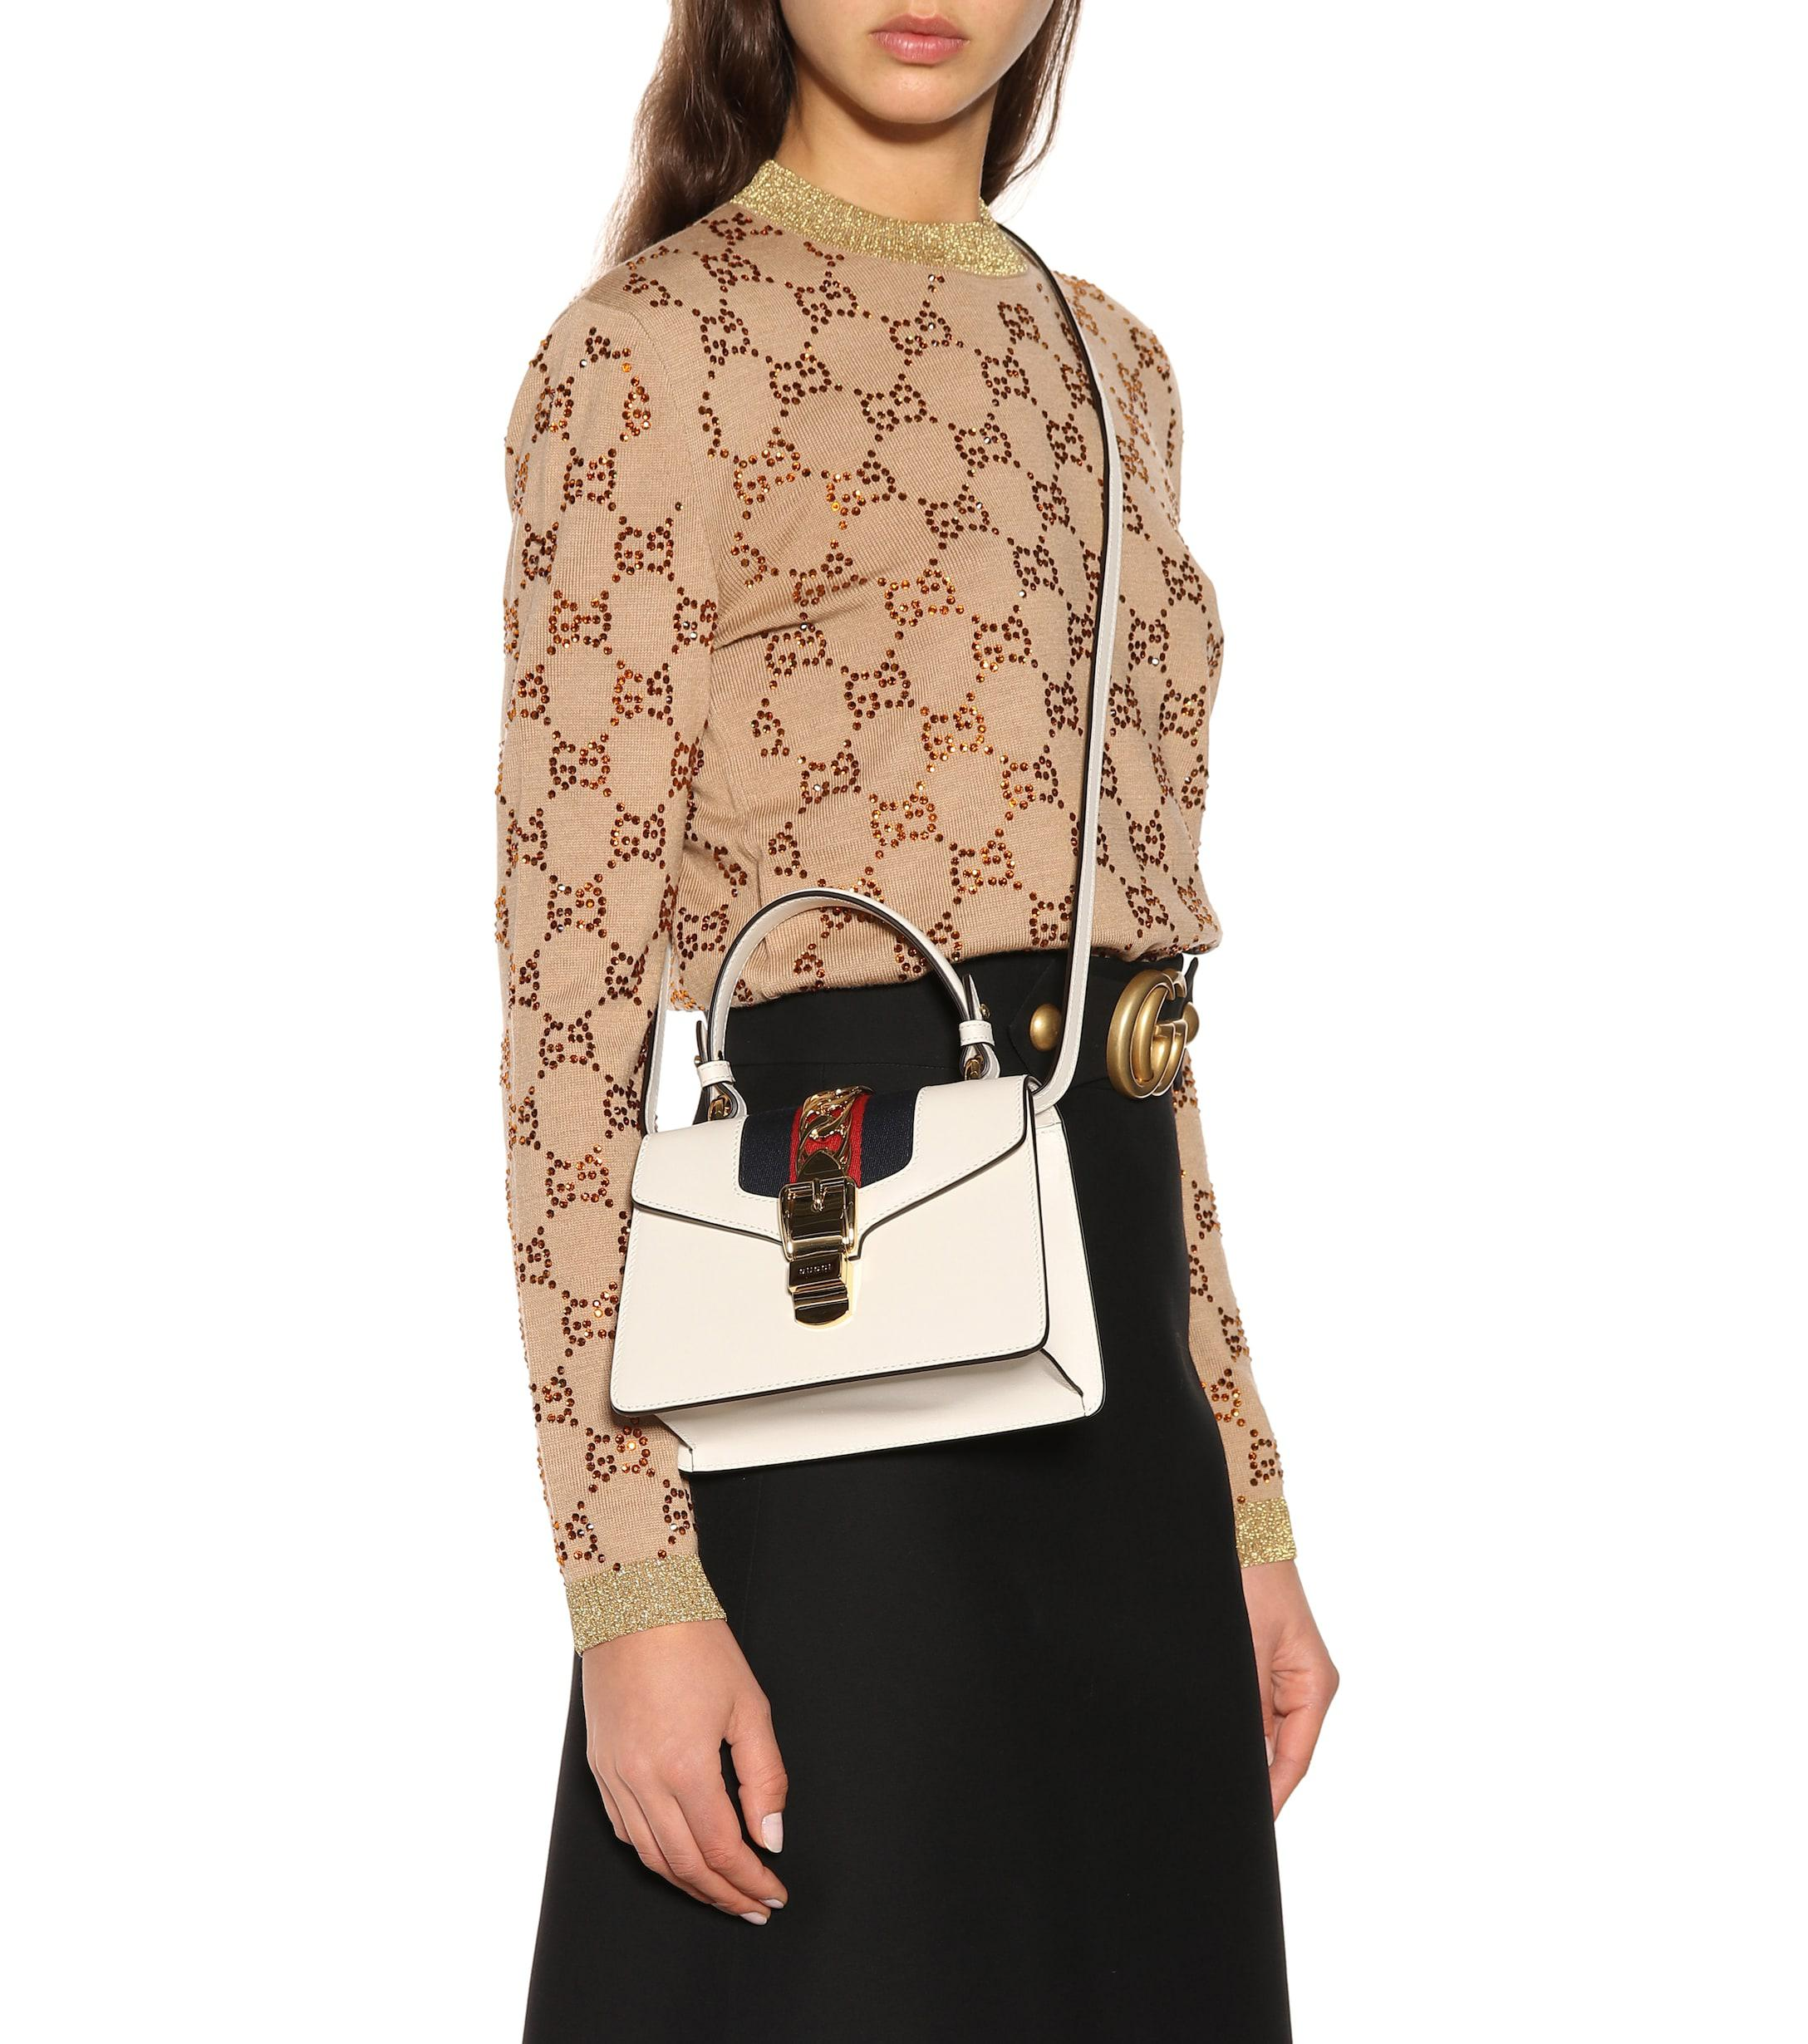 Gucci - Multicolor Sylvie Mini Leather Crossbody Bag - Lyst. View fullscreen f83ff87694e48